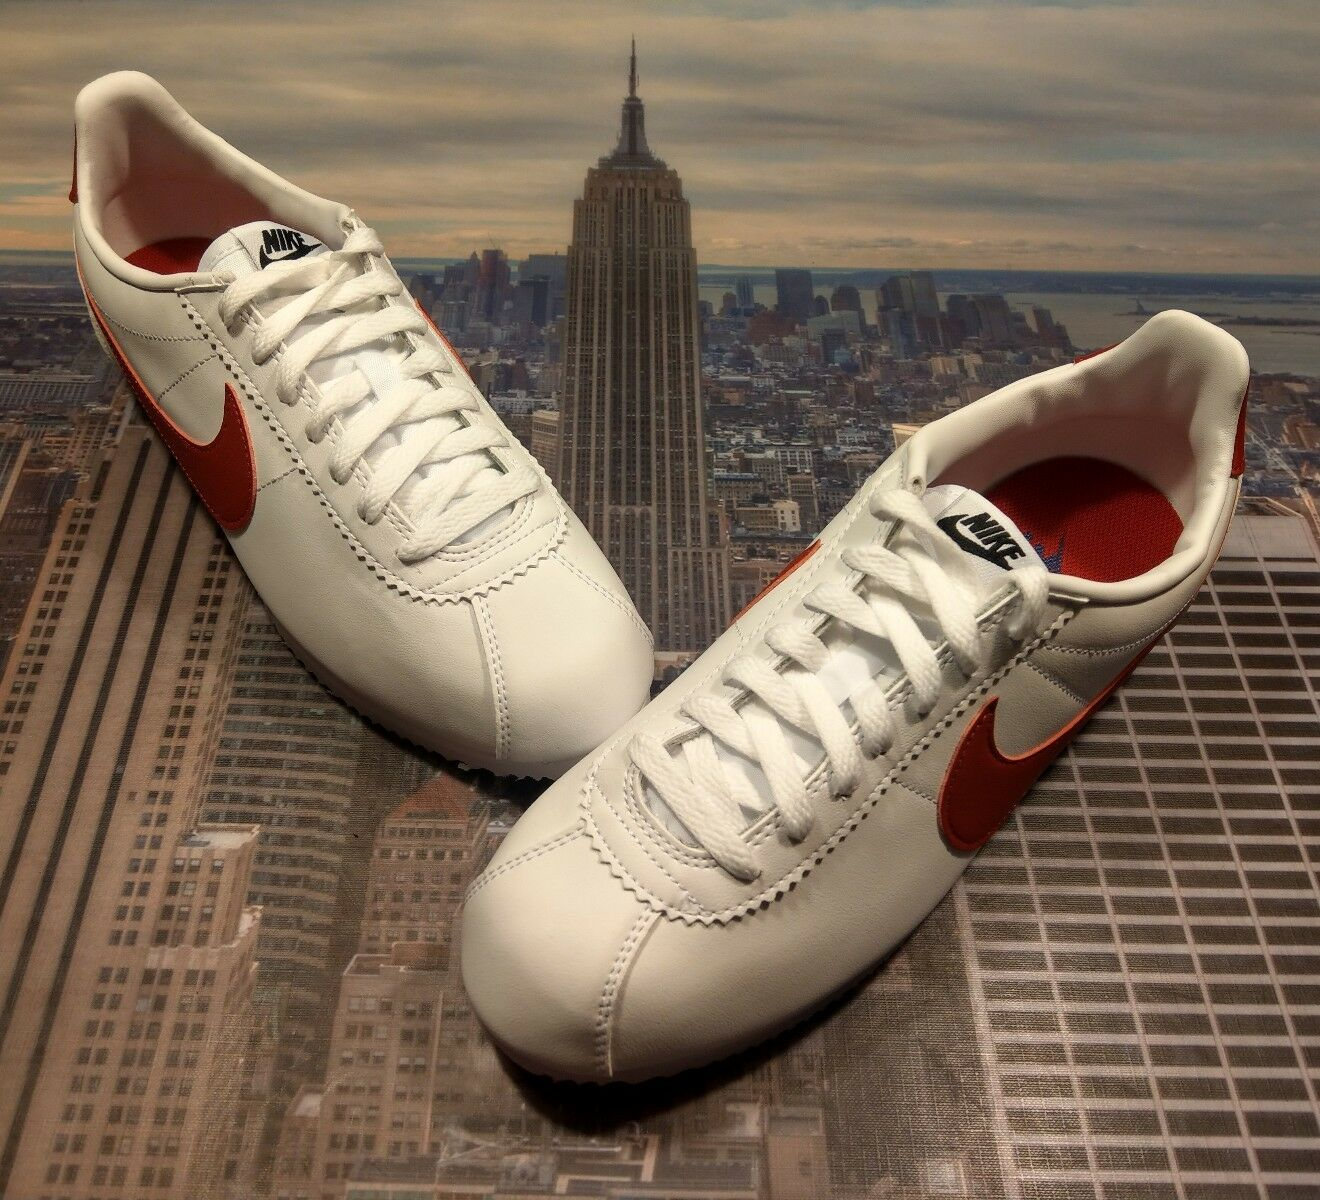 Nike Womens Classic Cortez Leather Forrest Gump White/Red Size 10 807471 103 New